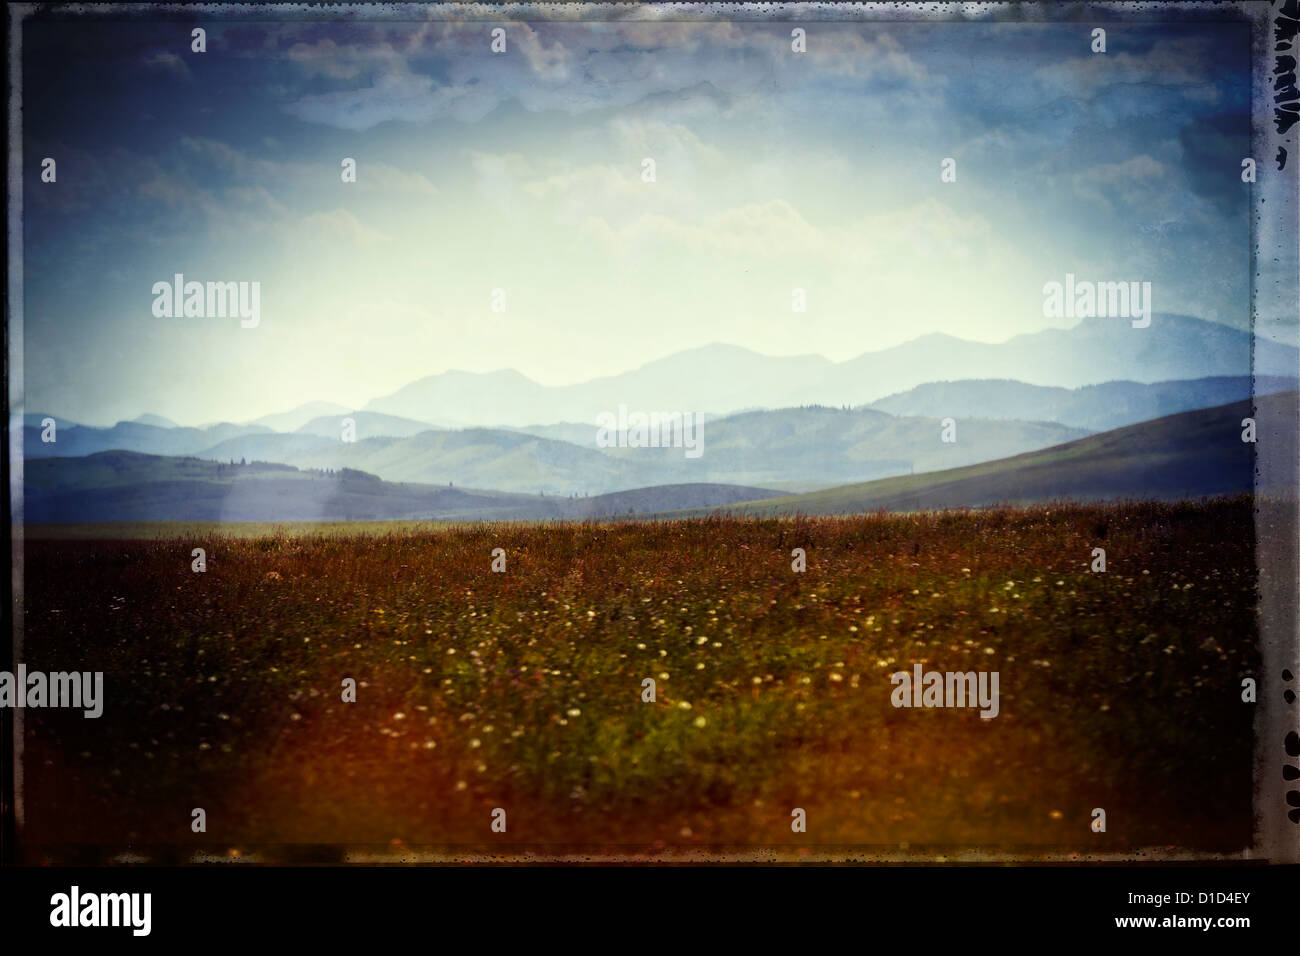 alberta prairie with the foothill in the distance - Stock Image